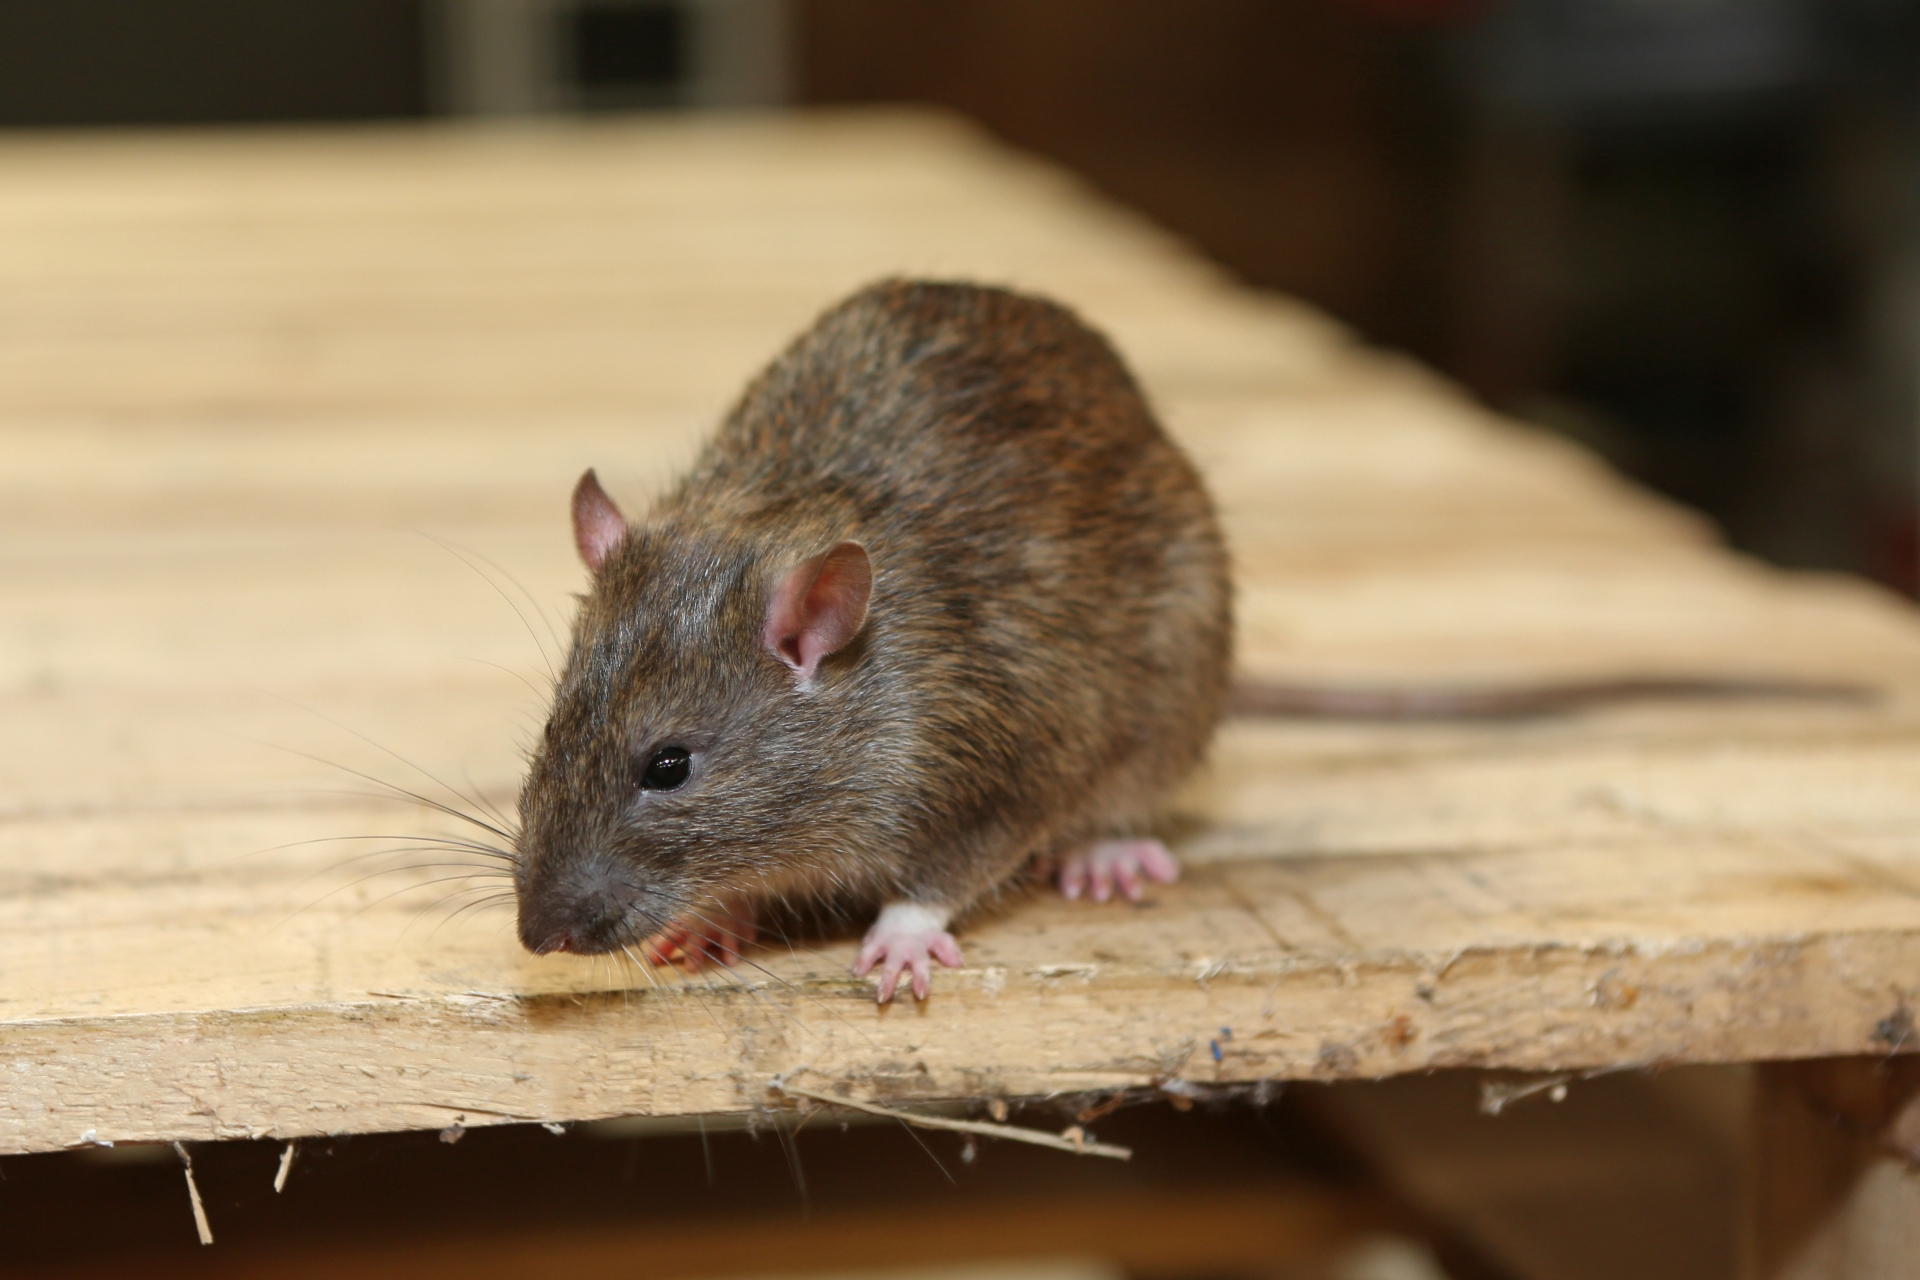 Rat extermination, Pest Control in Plaistow, E13. Call Now 020 8166 9746